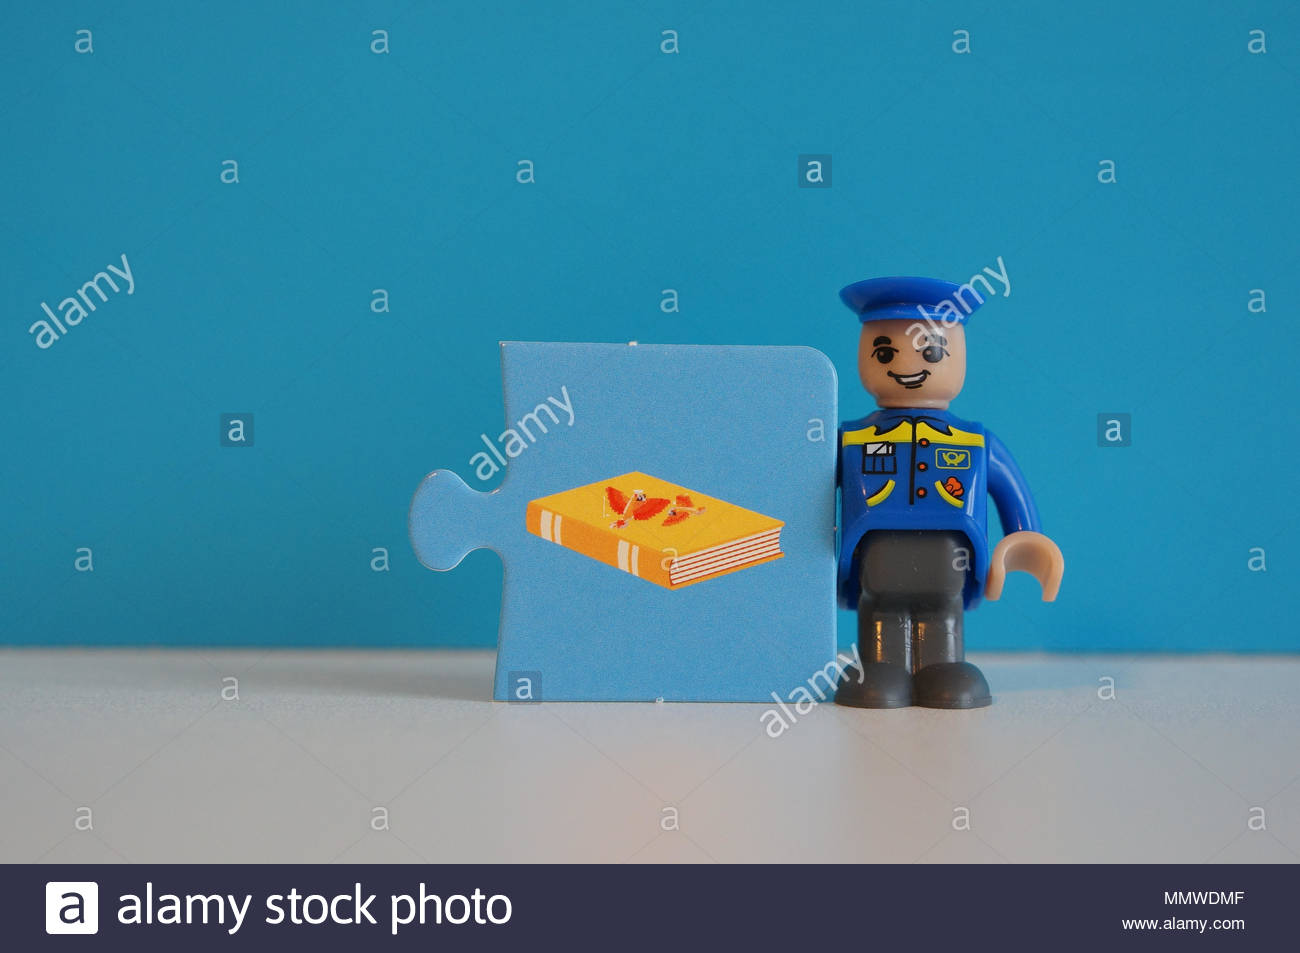 Playtive toy postman standing next to a puzzle piece with book illustration - Stock Image